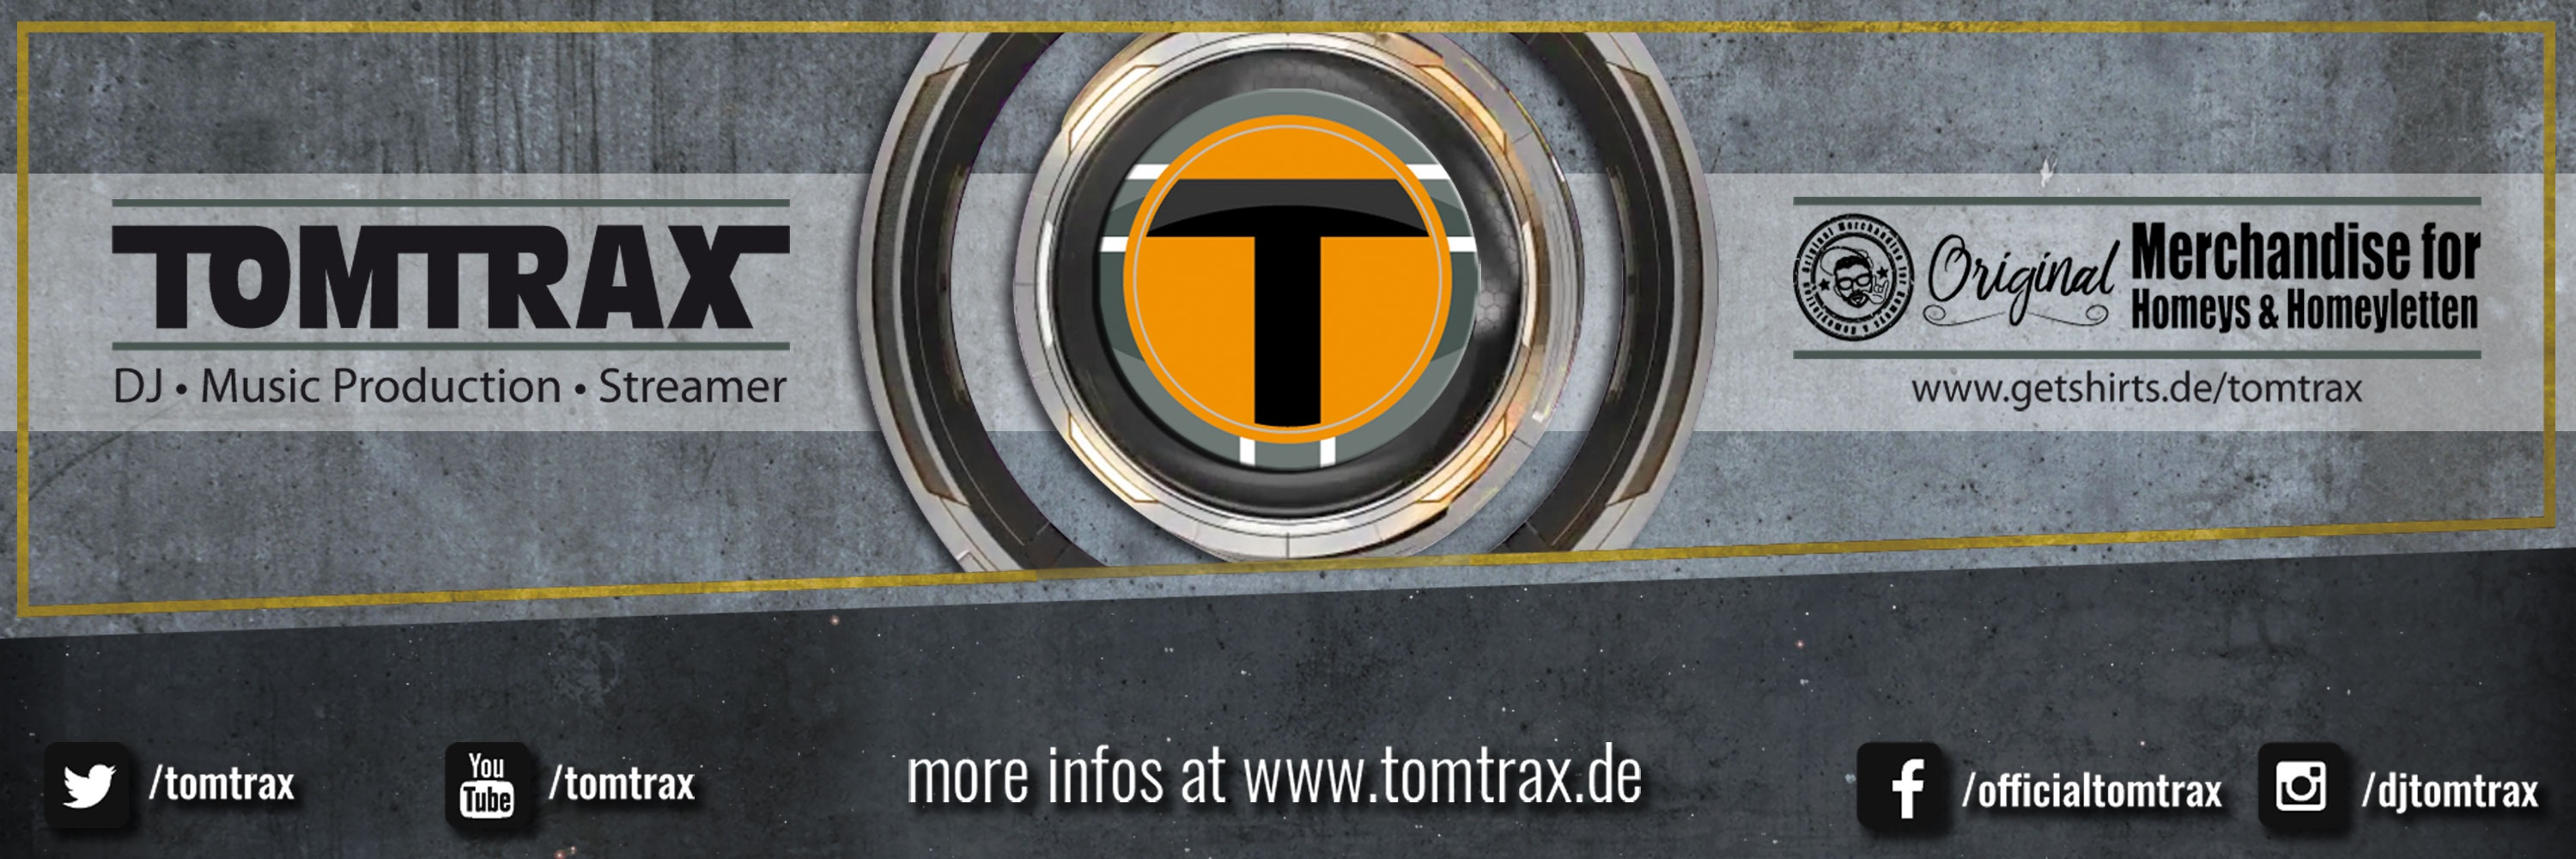 Tomtrax